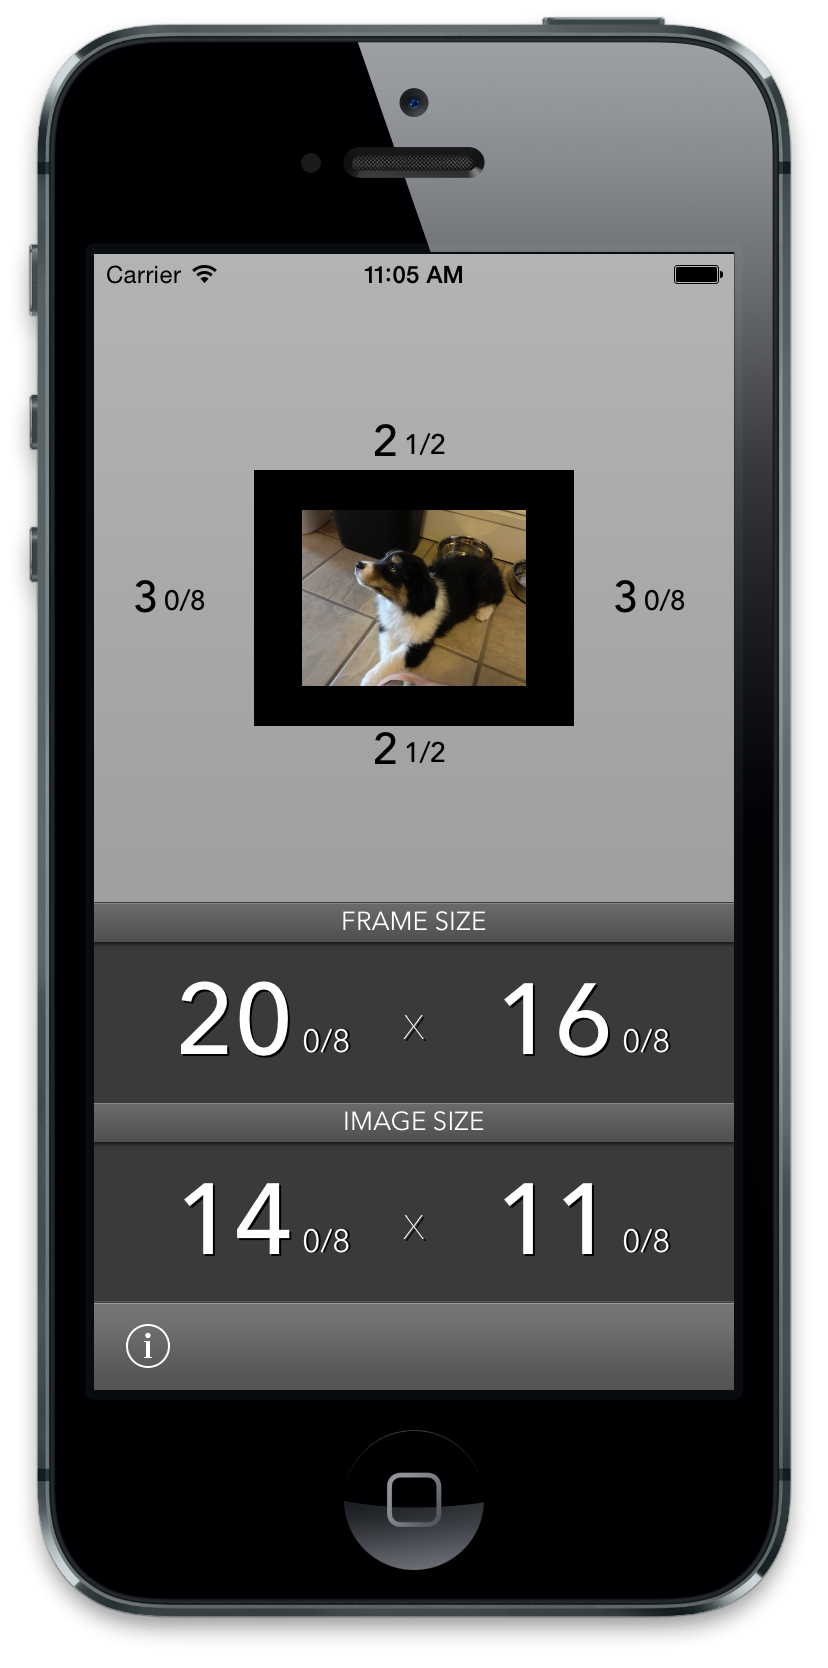 Mat Border Calculator for iPhone - image 2 - student project